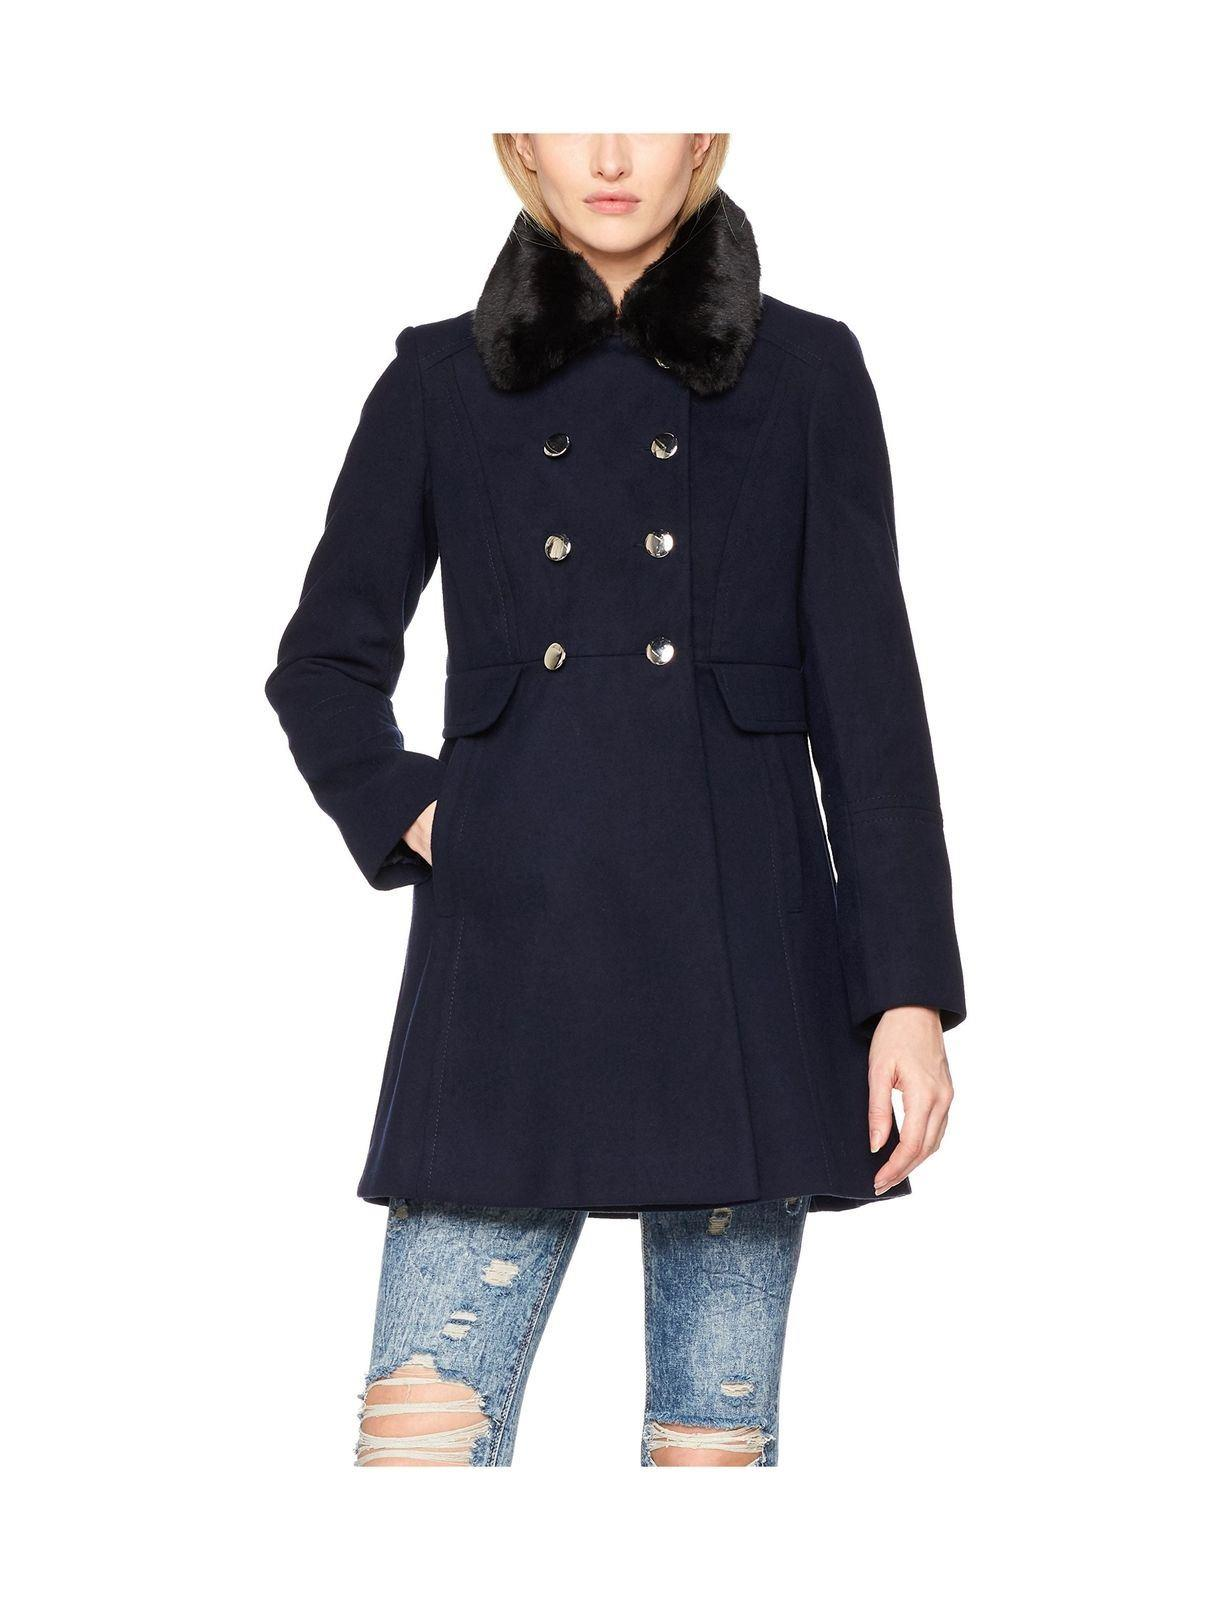 Anastasia - Women's Double Breasted Coat With Fux Fur Collar